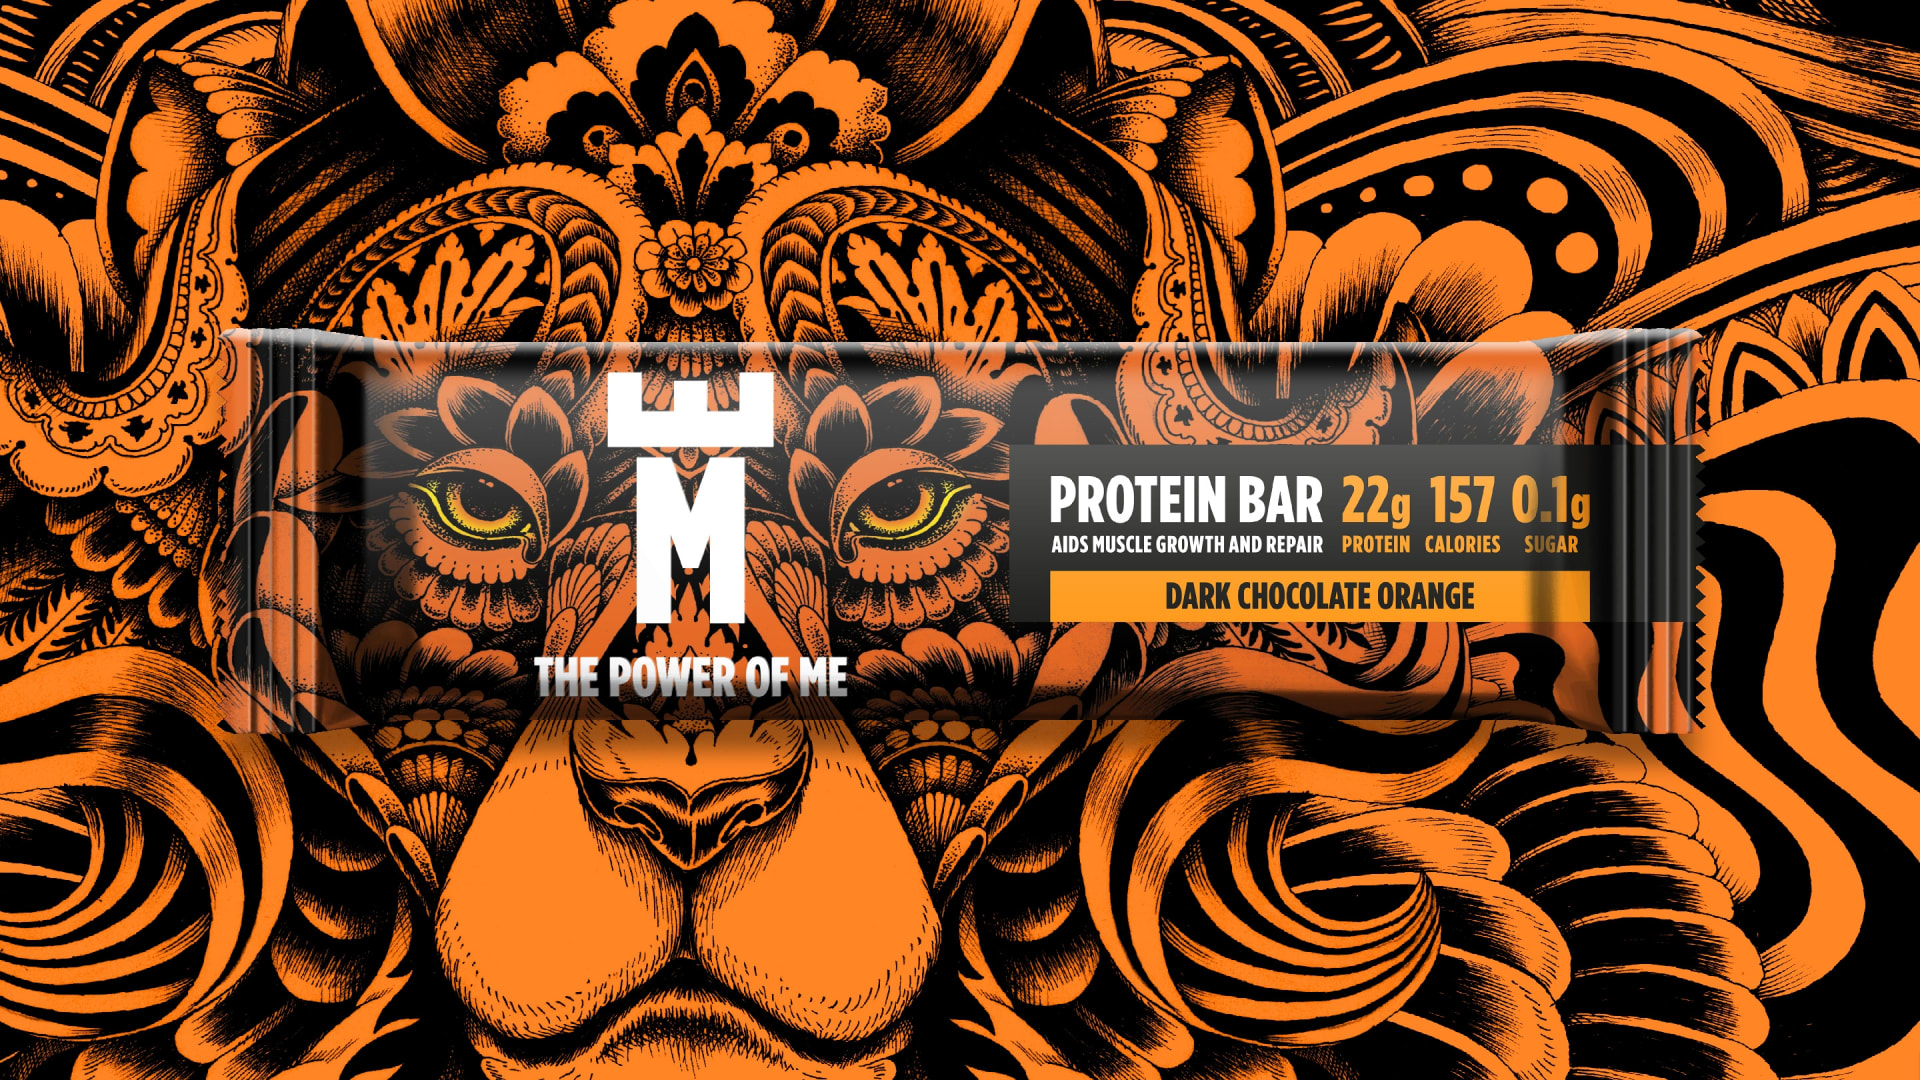 The Power of Me protein bar packaging